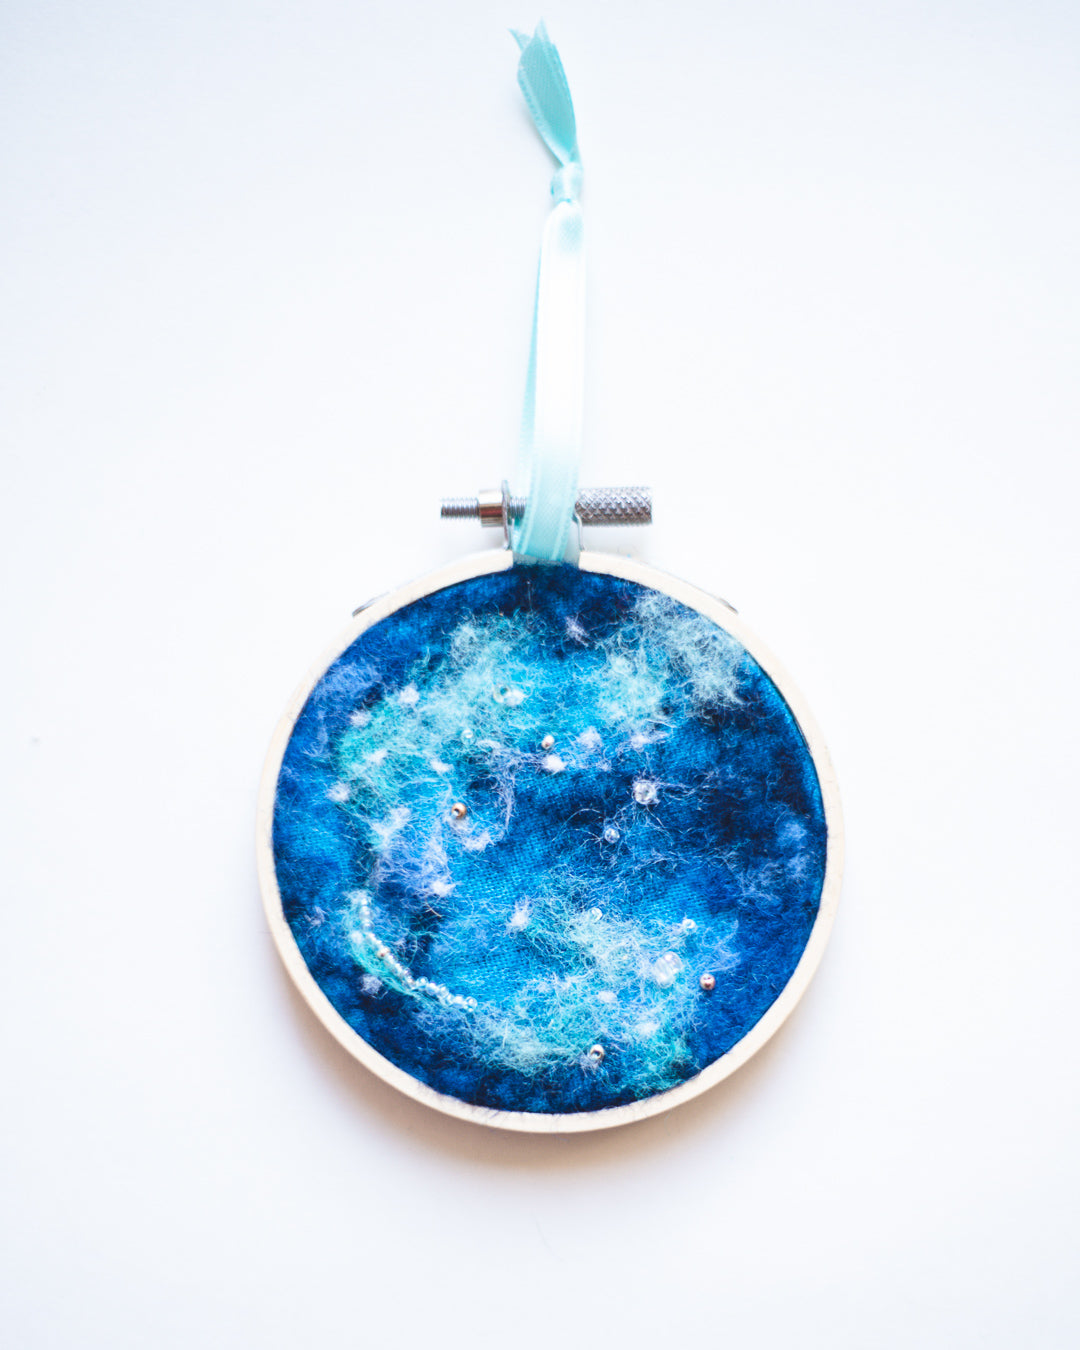 Galaxy Ornament Wool Felted Original Art no. 1 - 3 in. hoop